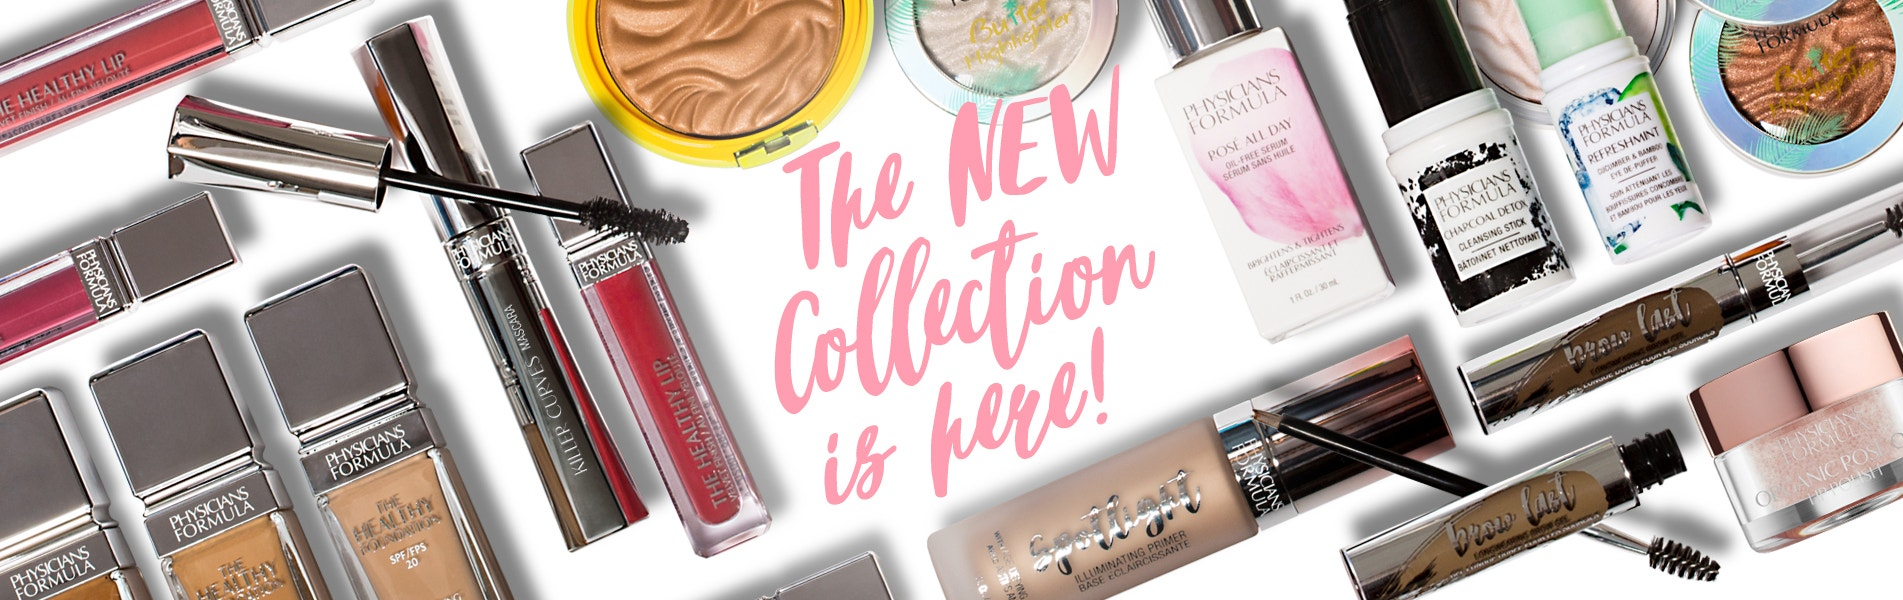 The New Collection Is Here!